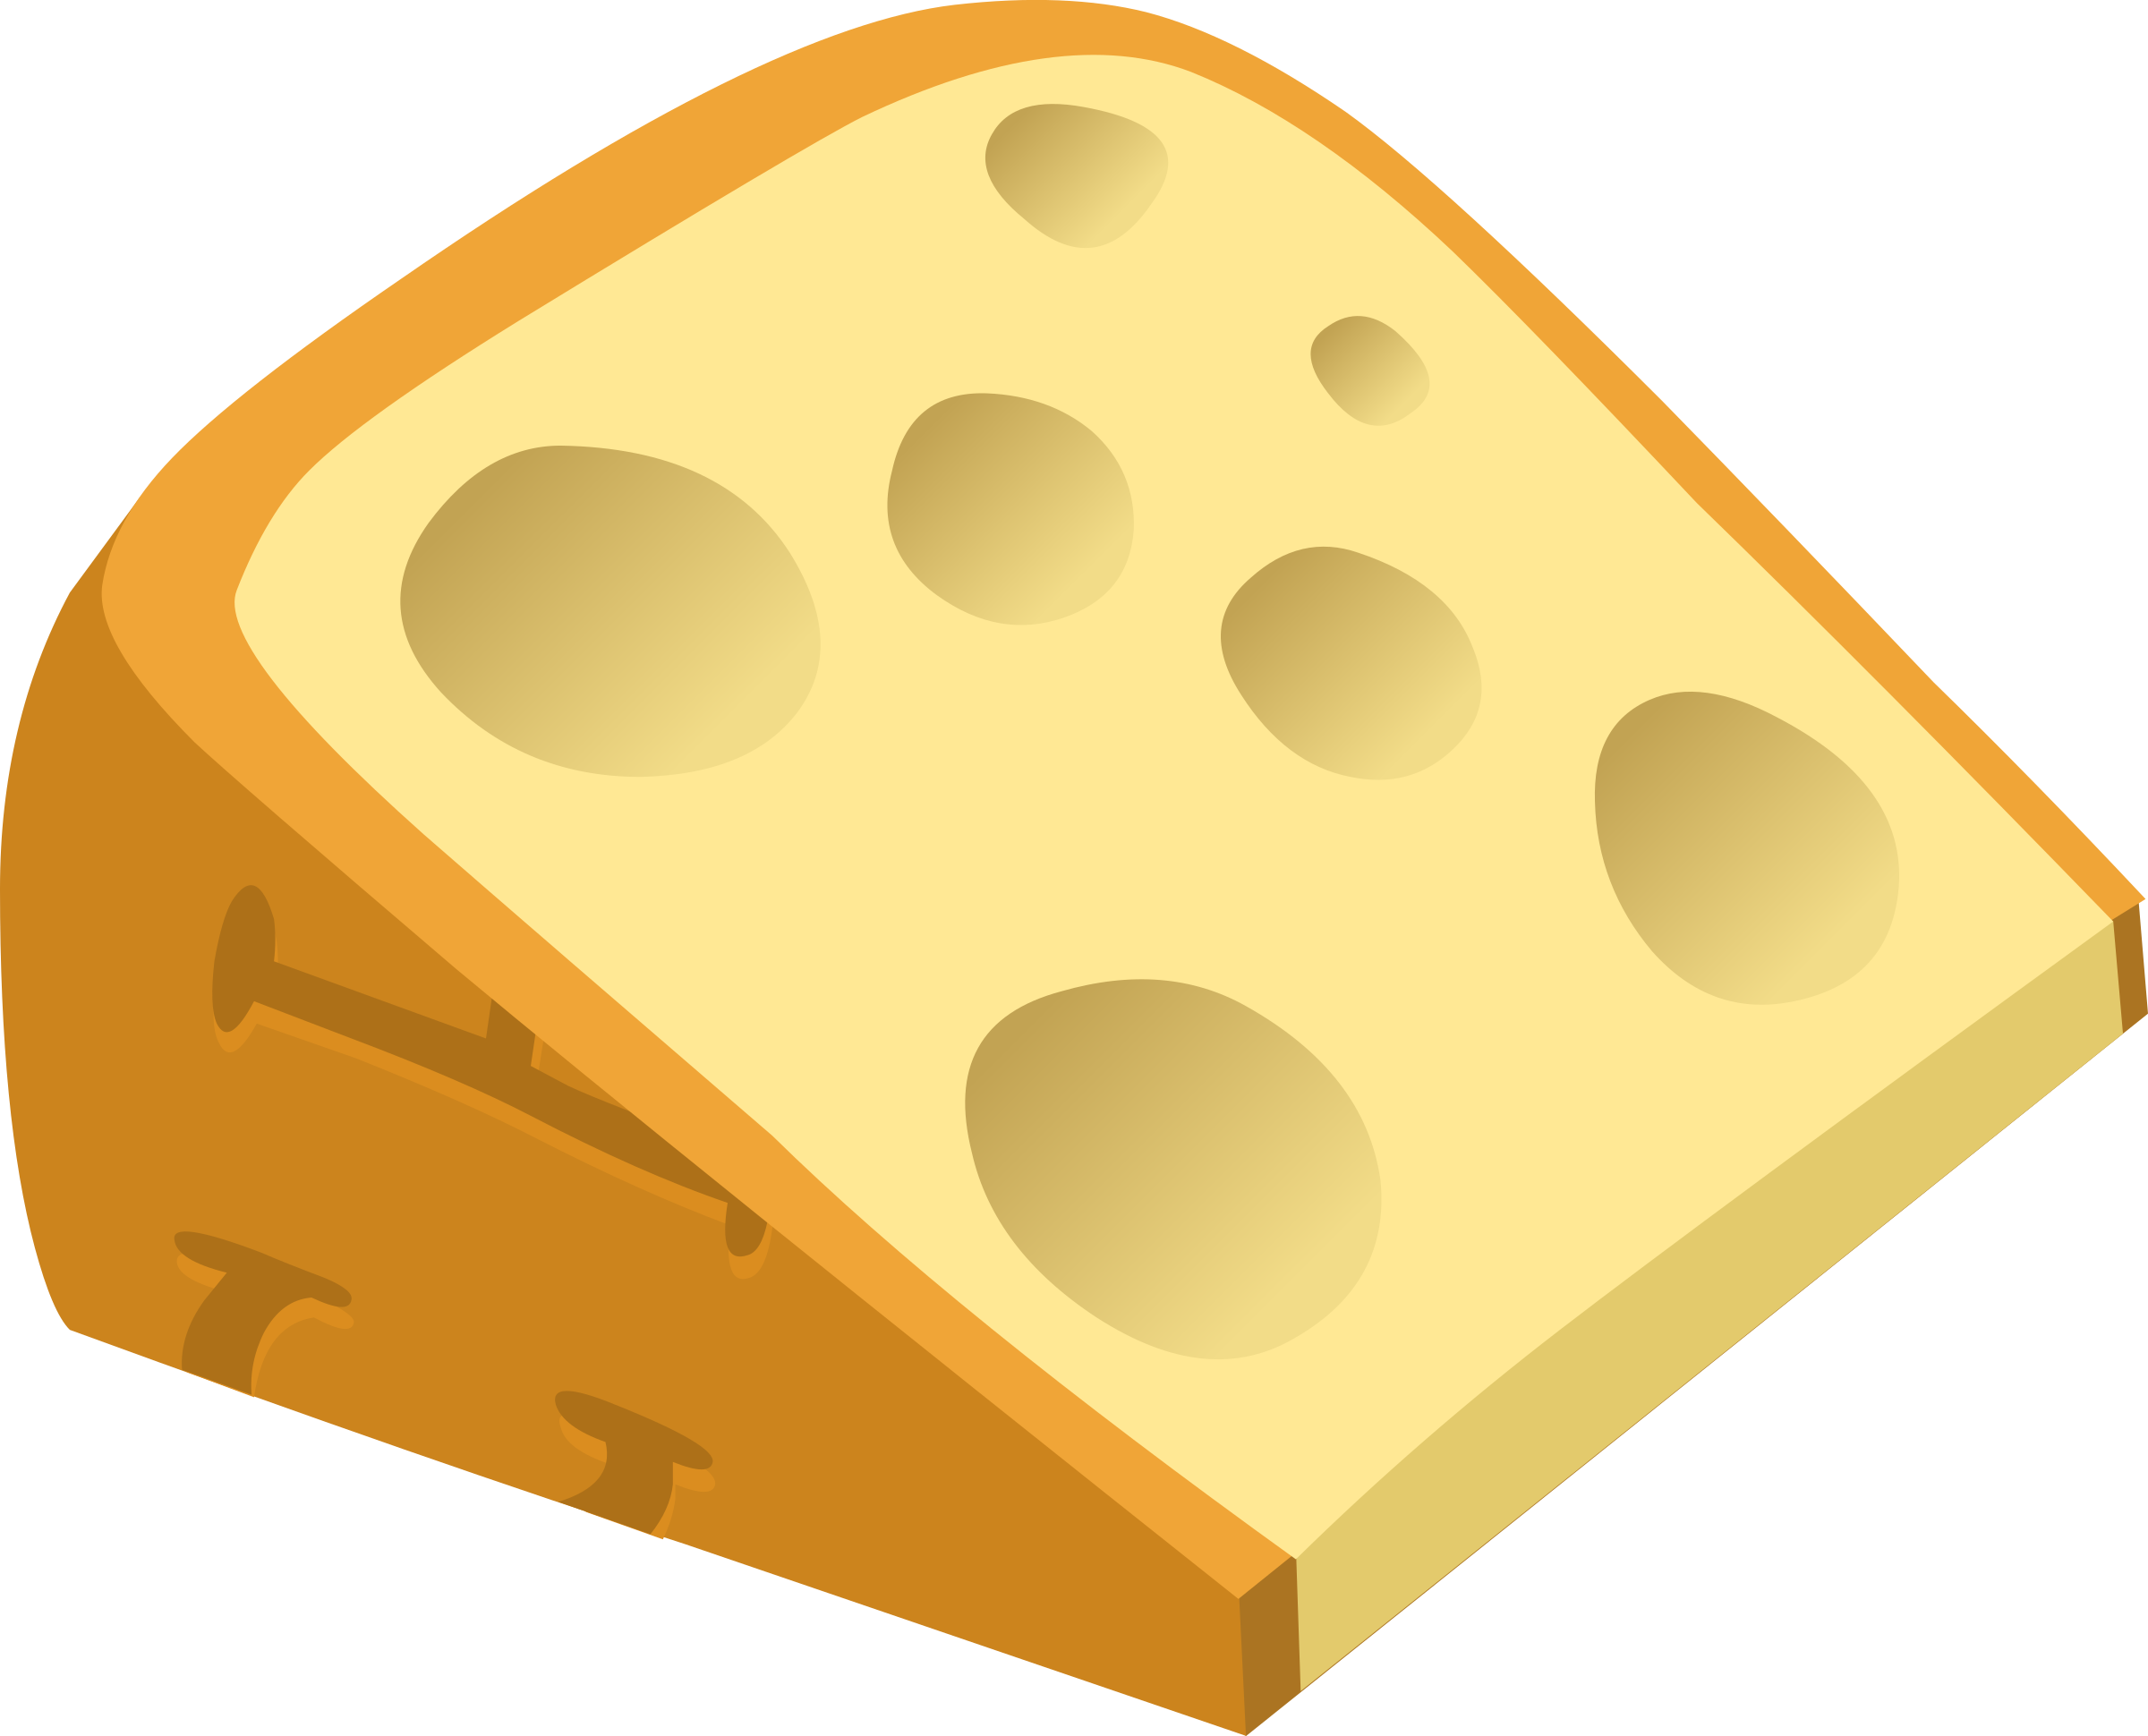 Cheese png images free. Food clipart milk